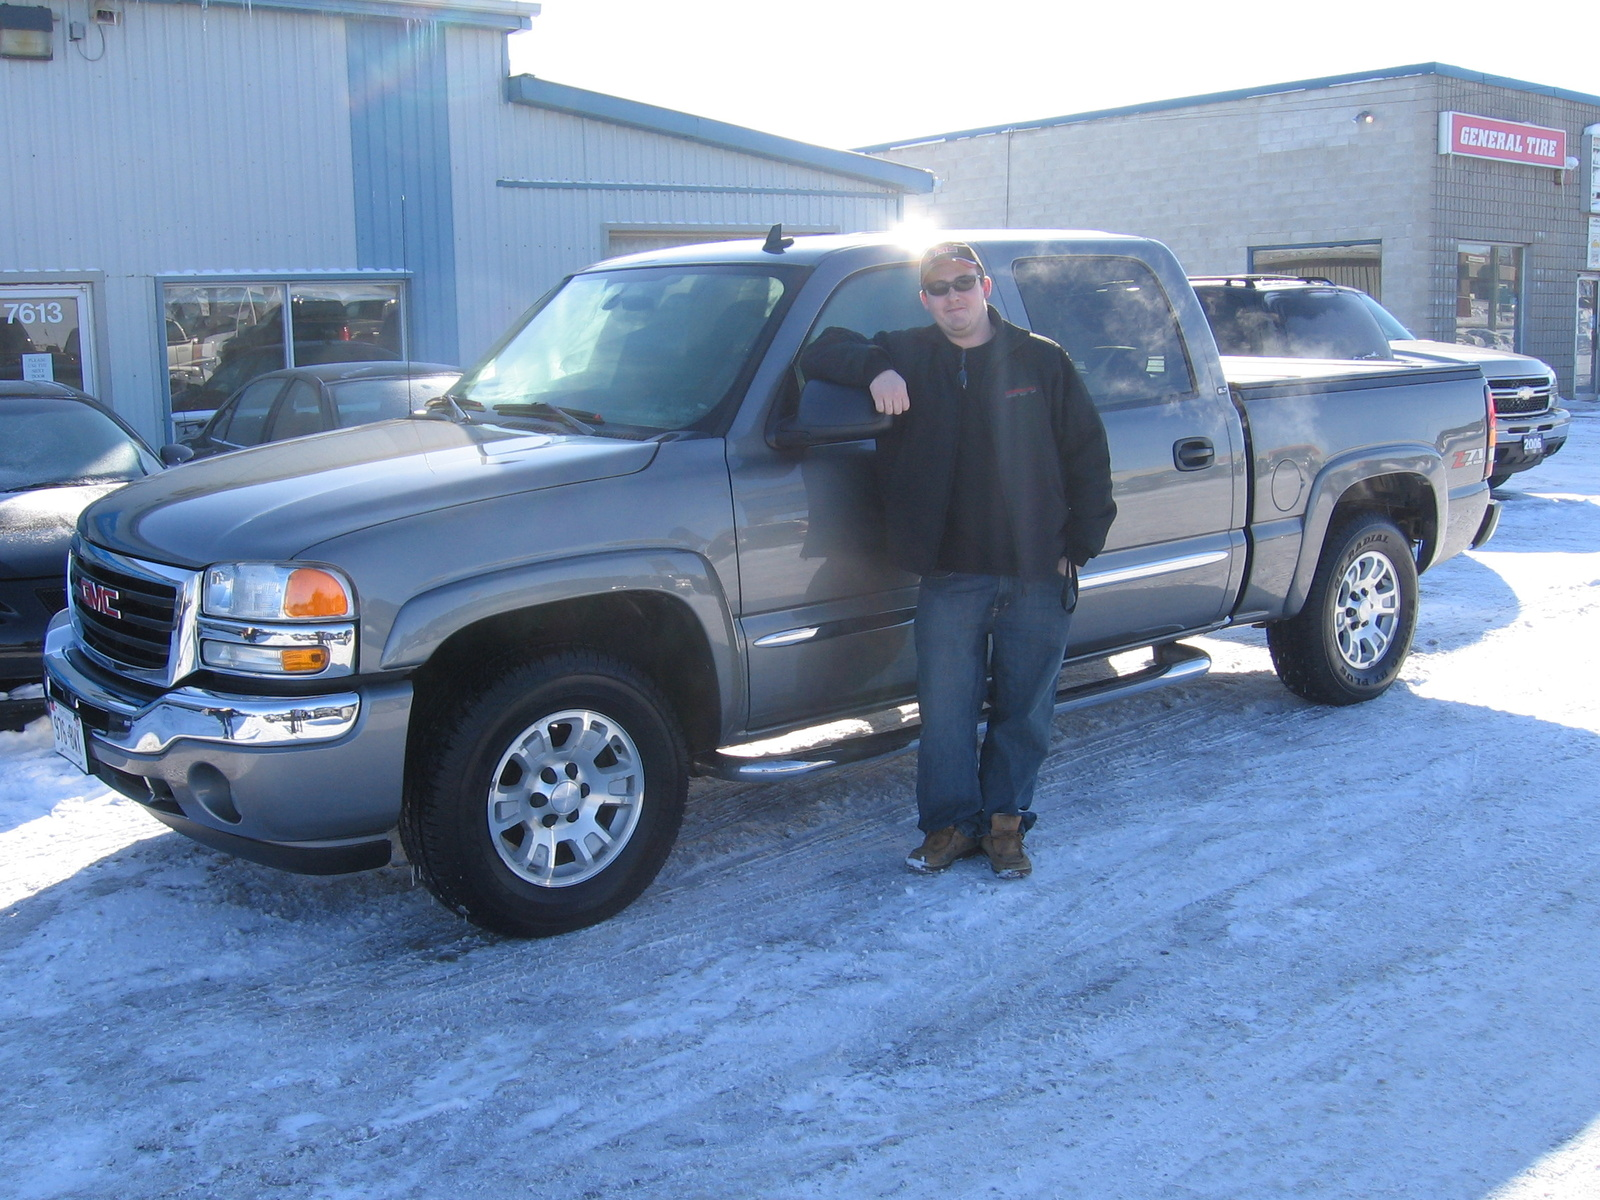 2008 gmc sierra 1500 transmission and drivetrain problems autos post. Black Bedroom Furniture Sets. Home Design Ideas